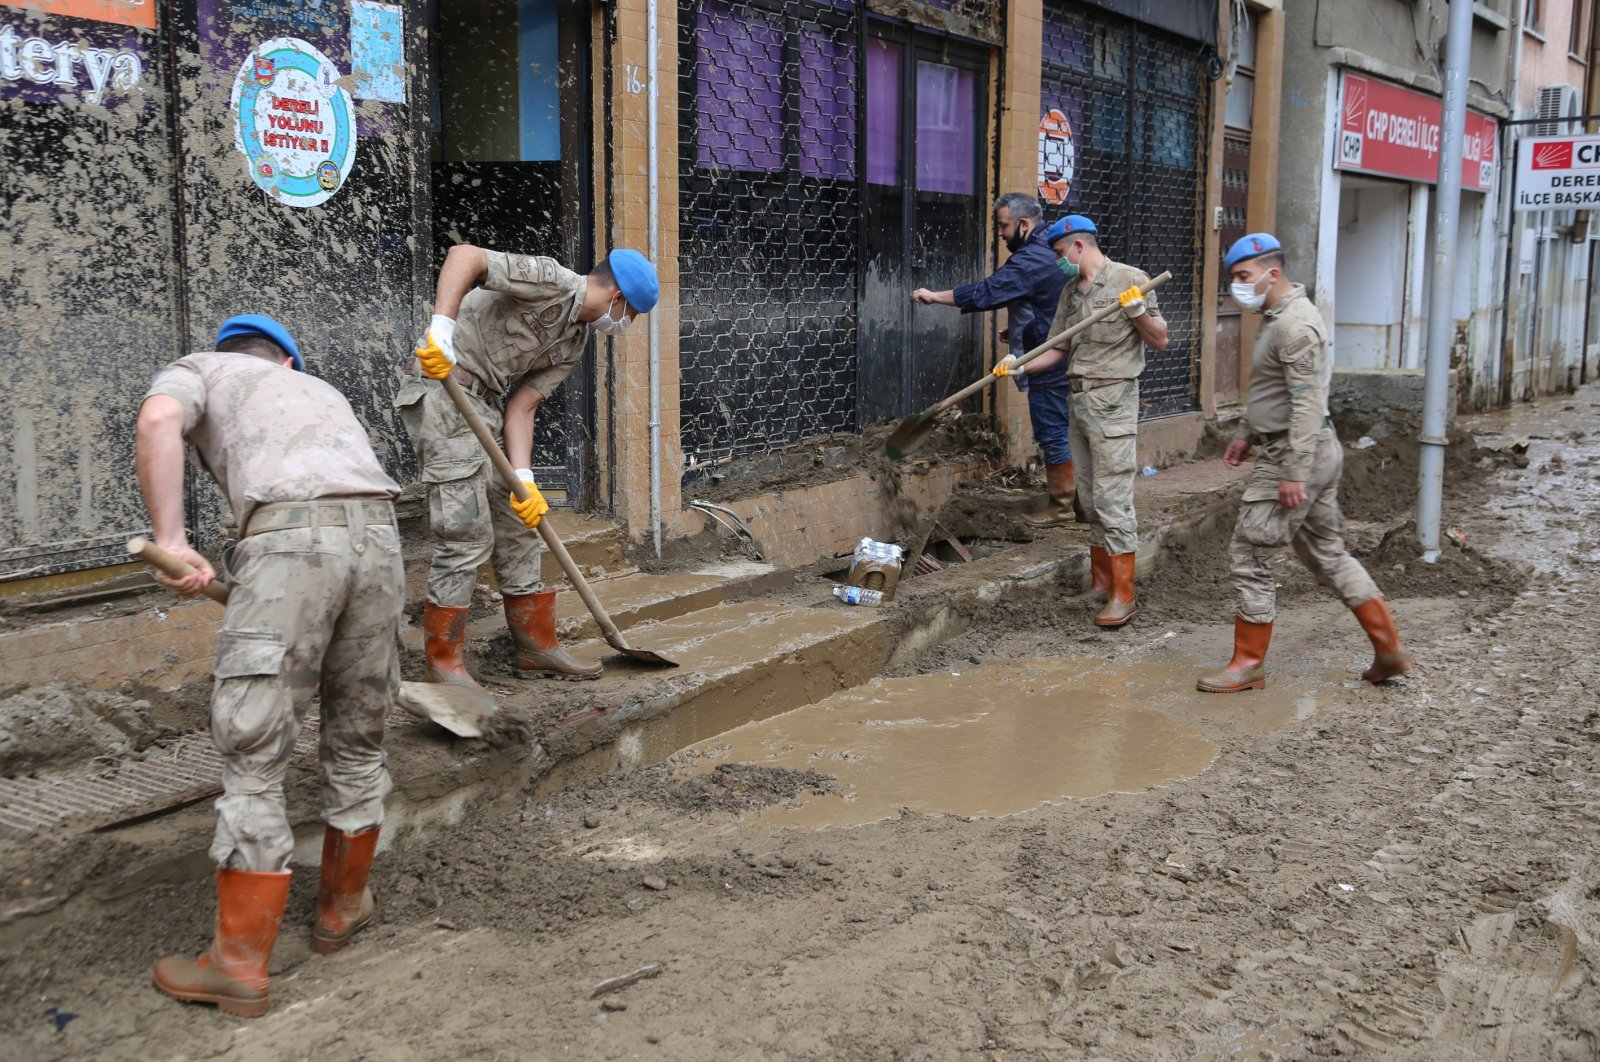 Soldiers help clean the mud in front of a shop in Dereli district, in Giresun, northern Turkey, Aug. 27, 2020. (AA Photo)